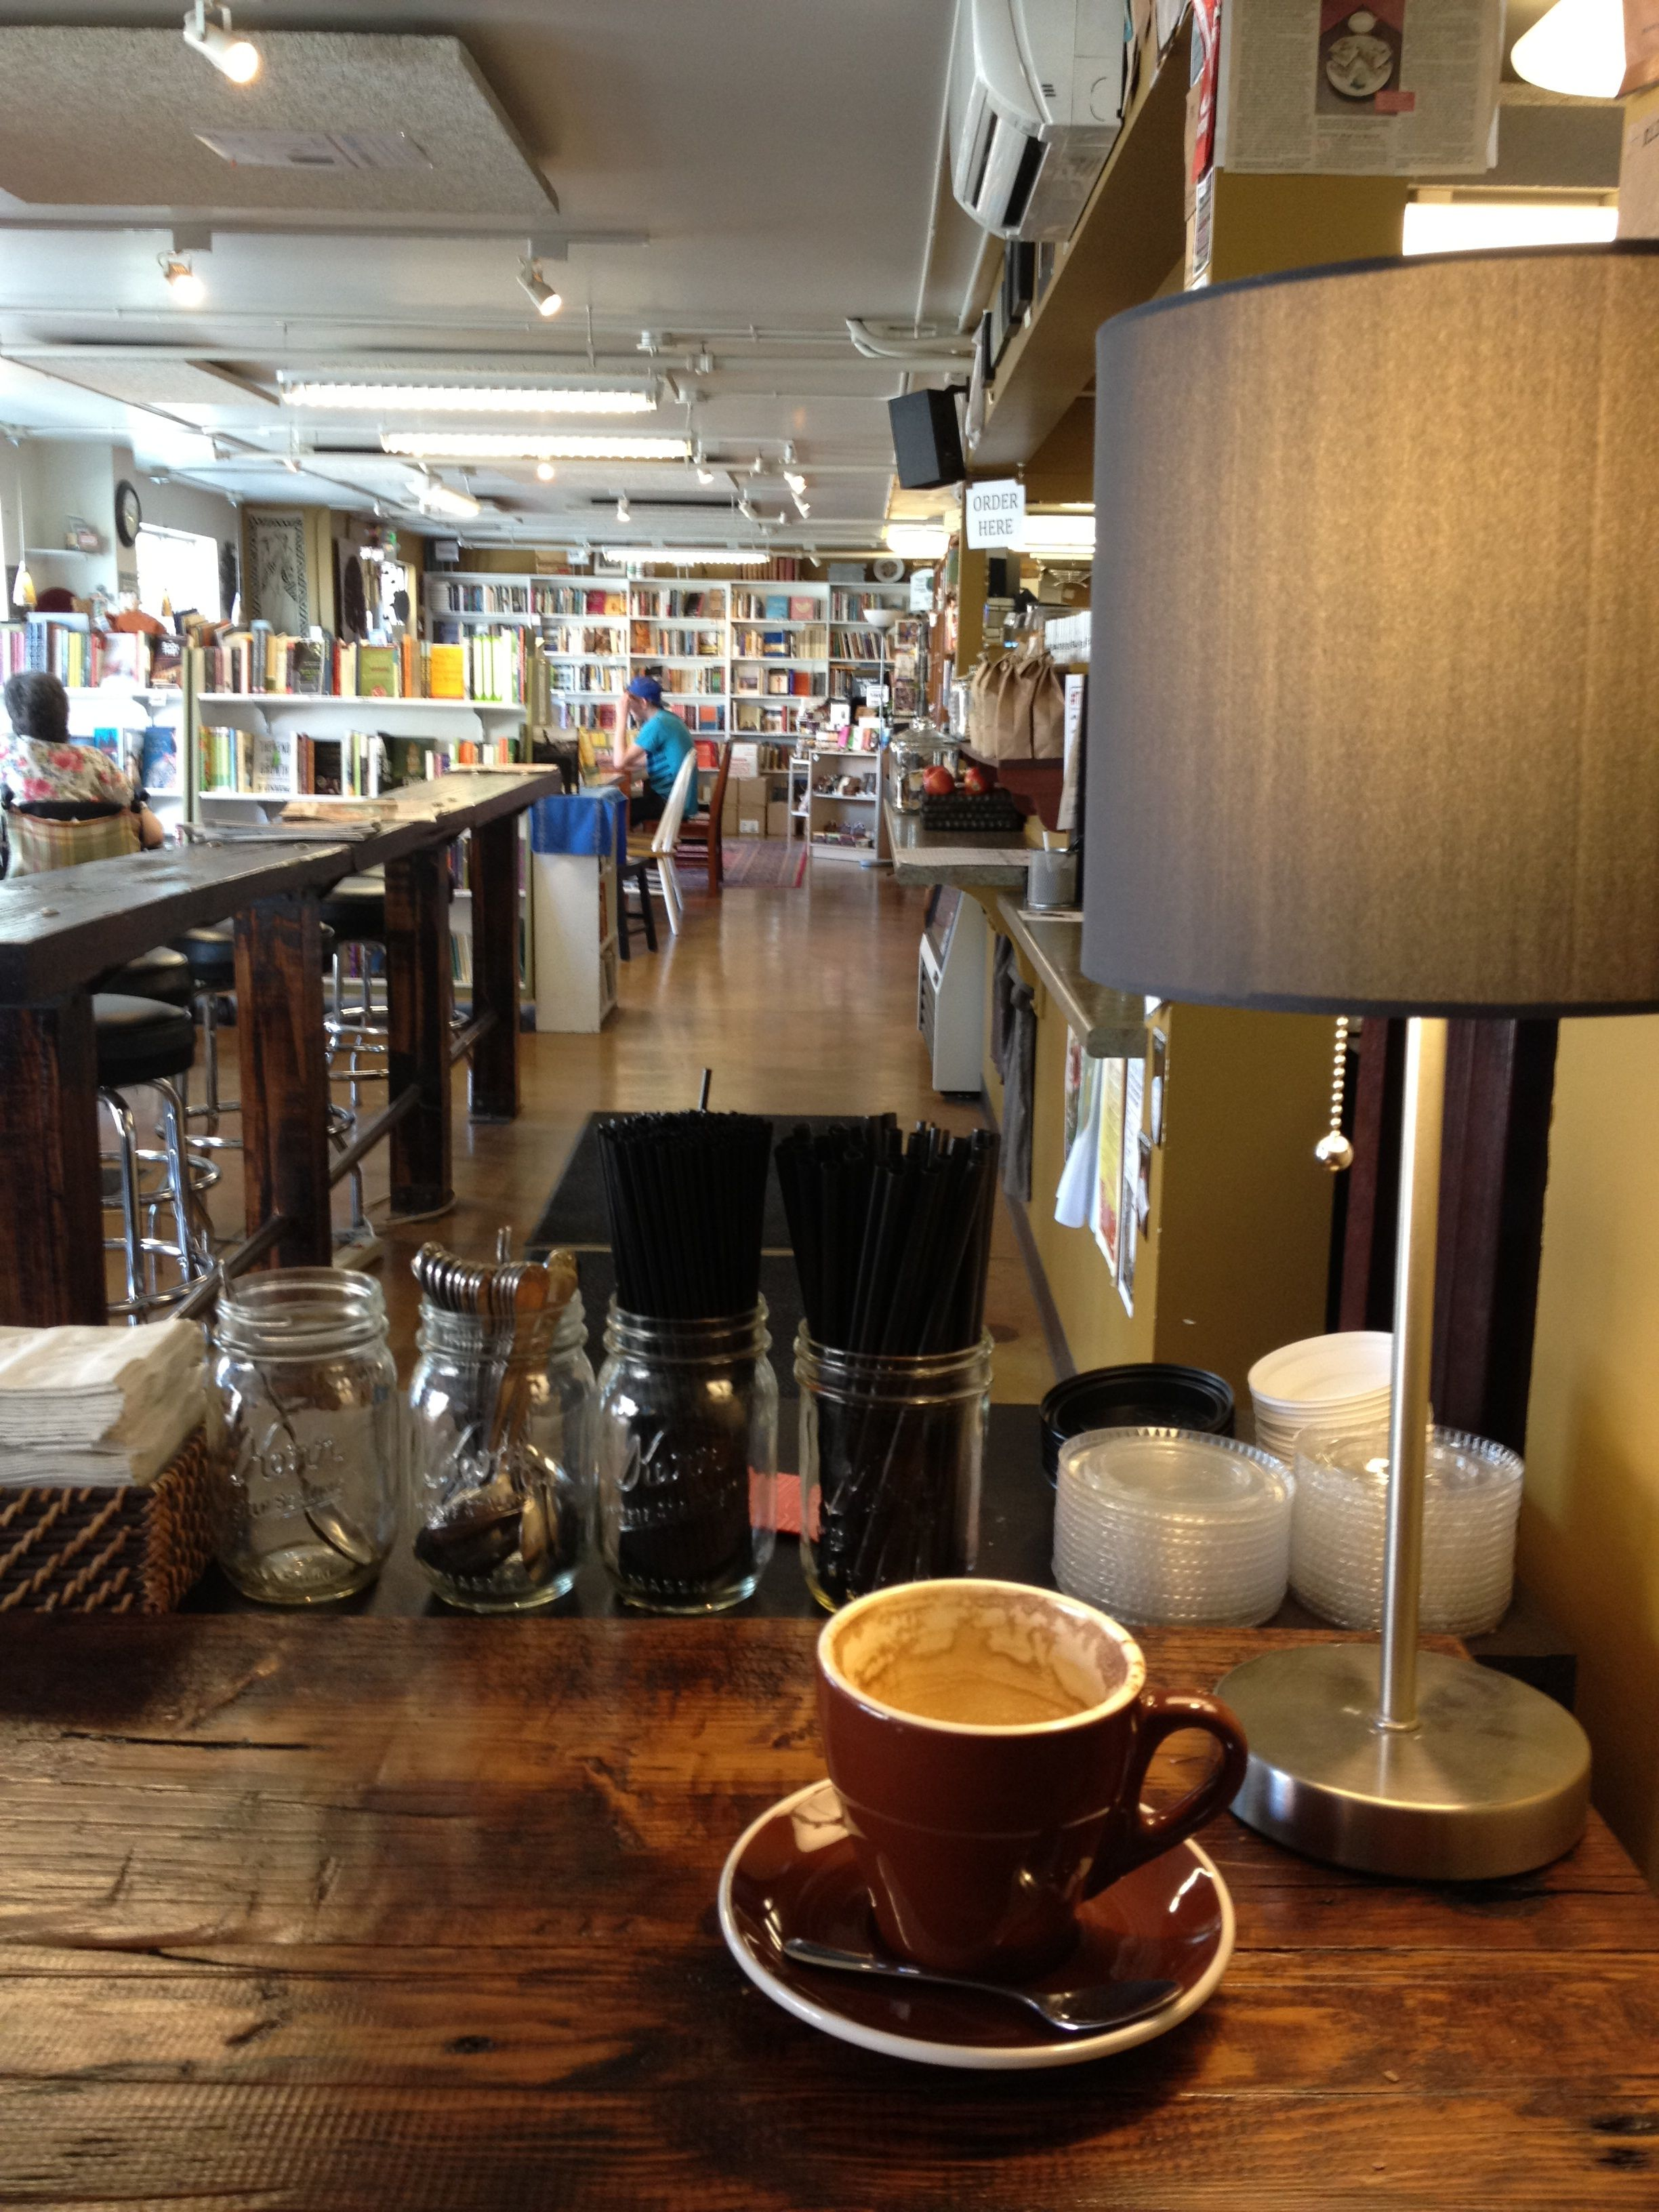 Cozy Coffee Shop/Kitchen. ( Like The Ideal Of Jars To Hold Items, And Small  Table Lamps, To Give A Cozy Feel.)